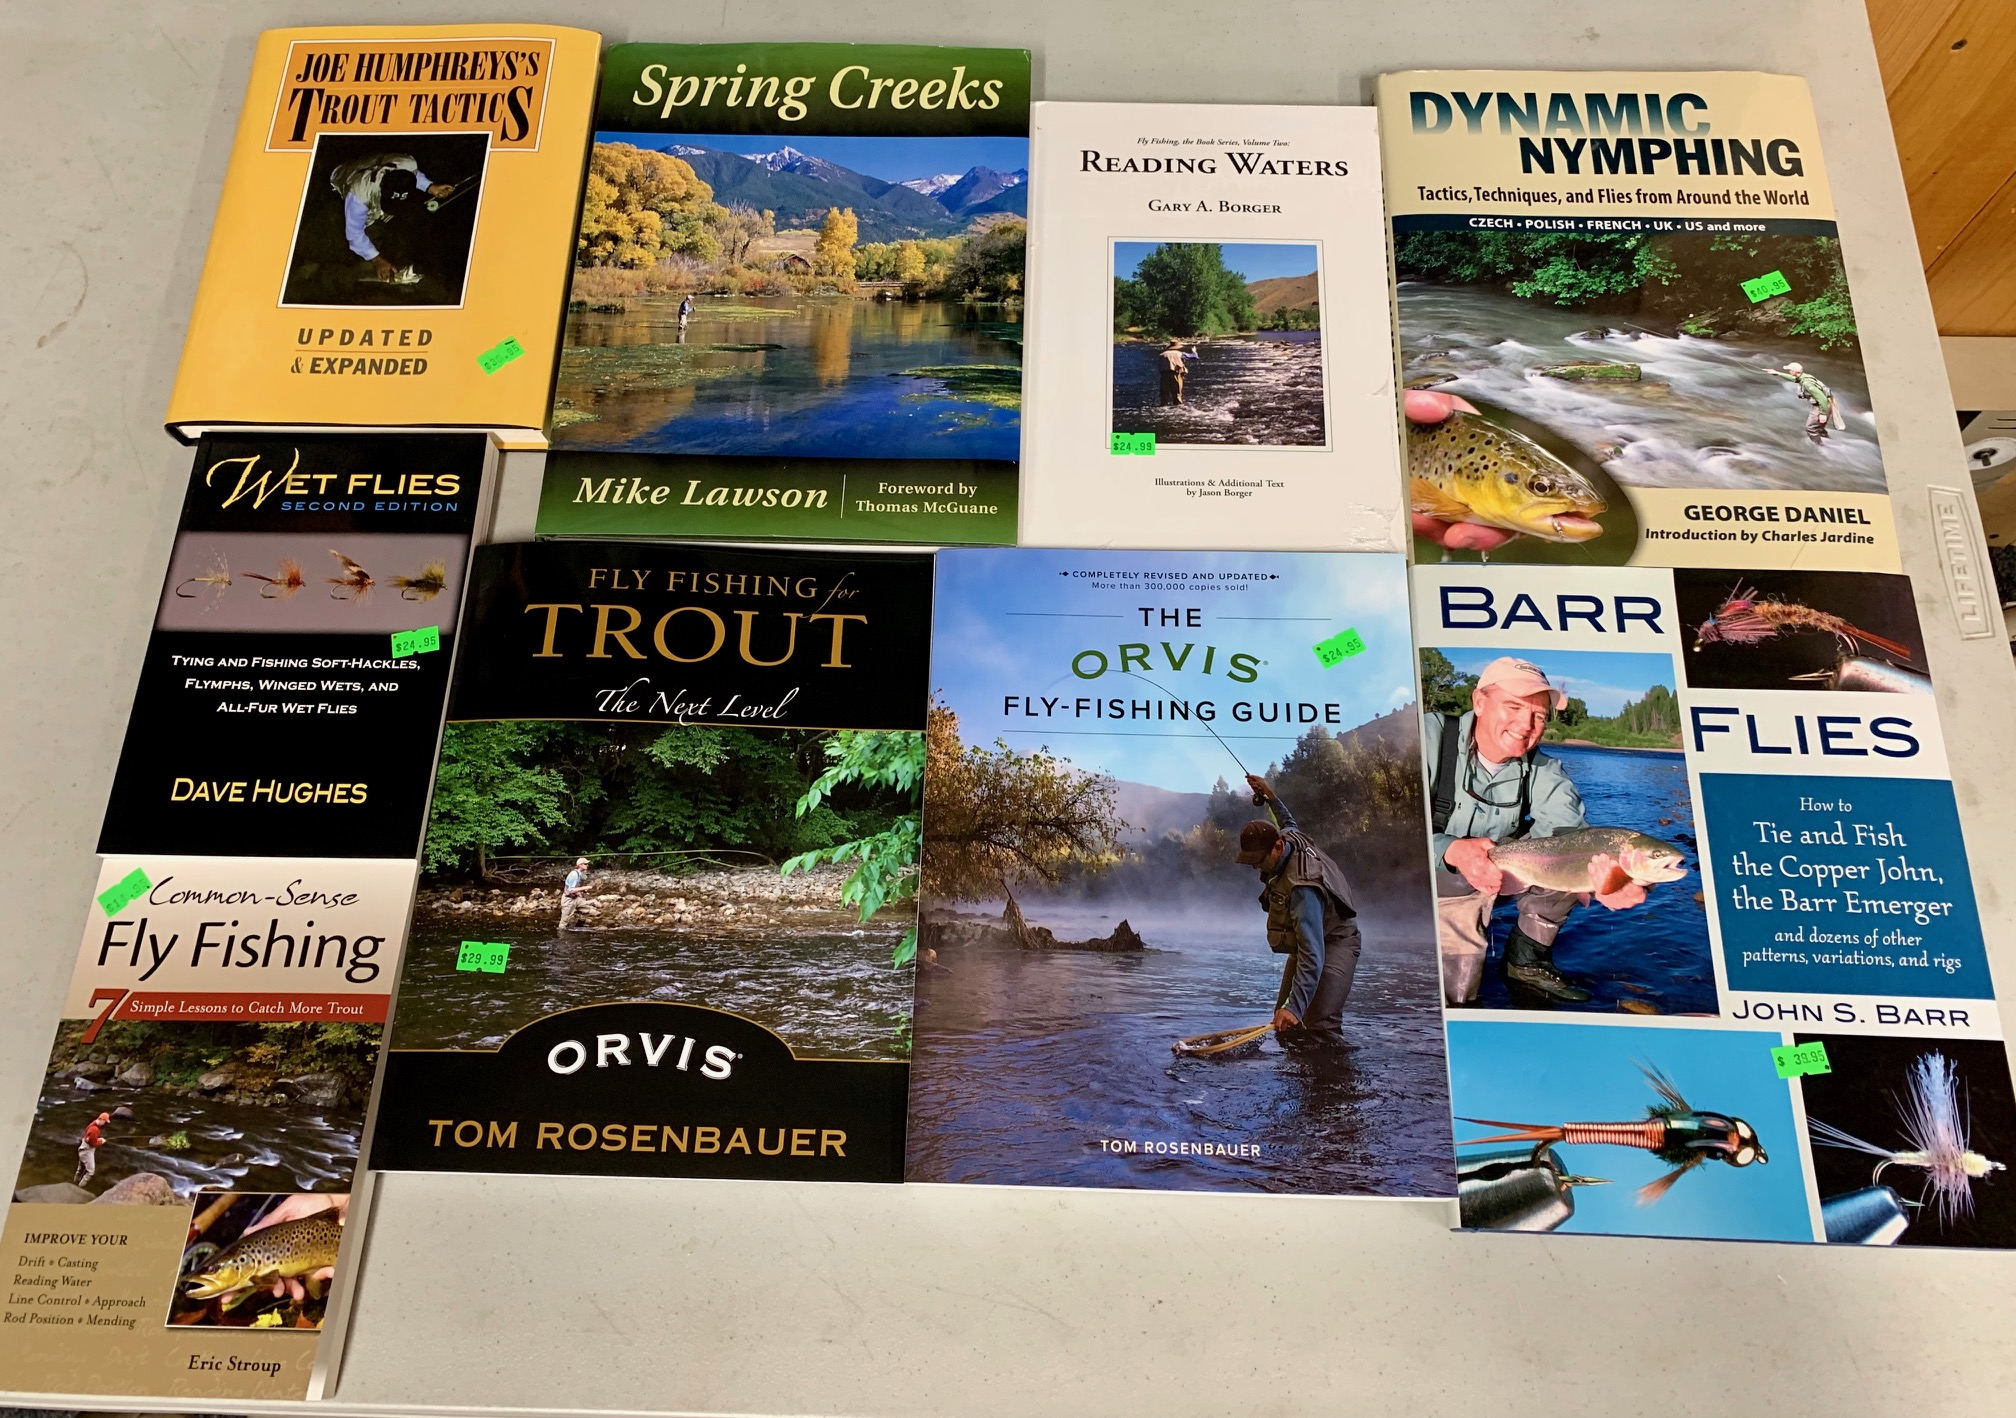 10 Of Torrey S Favorite Books December 2018 Upcountry Sportfishing